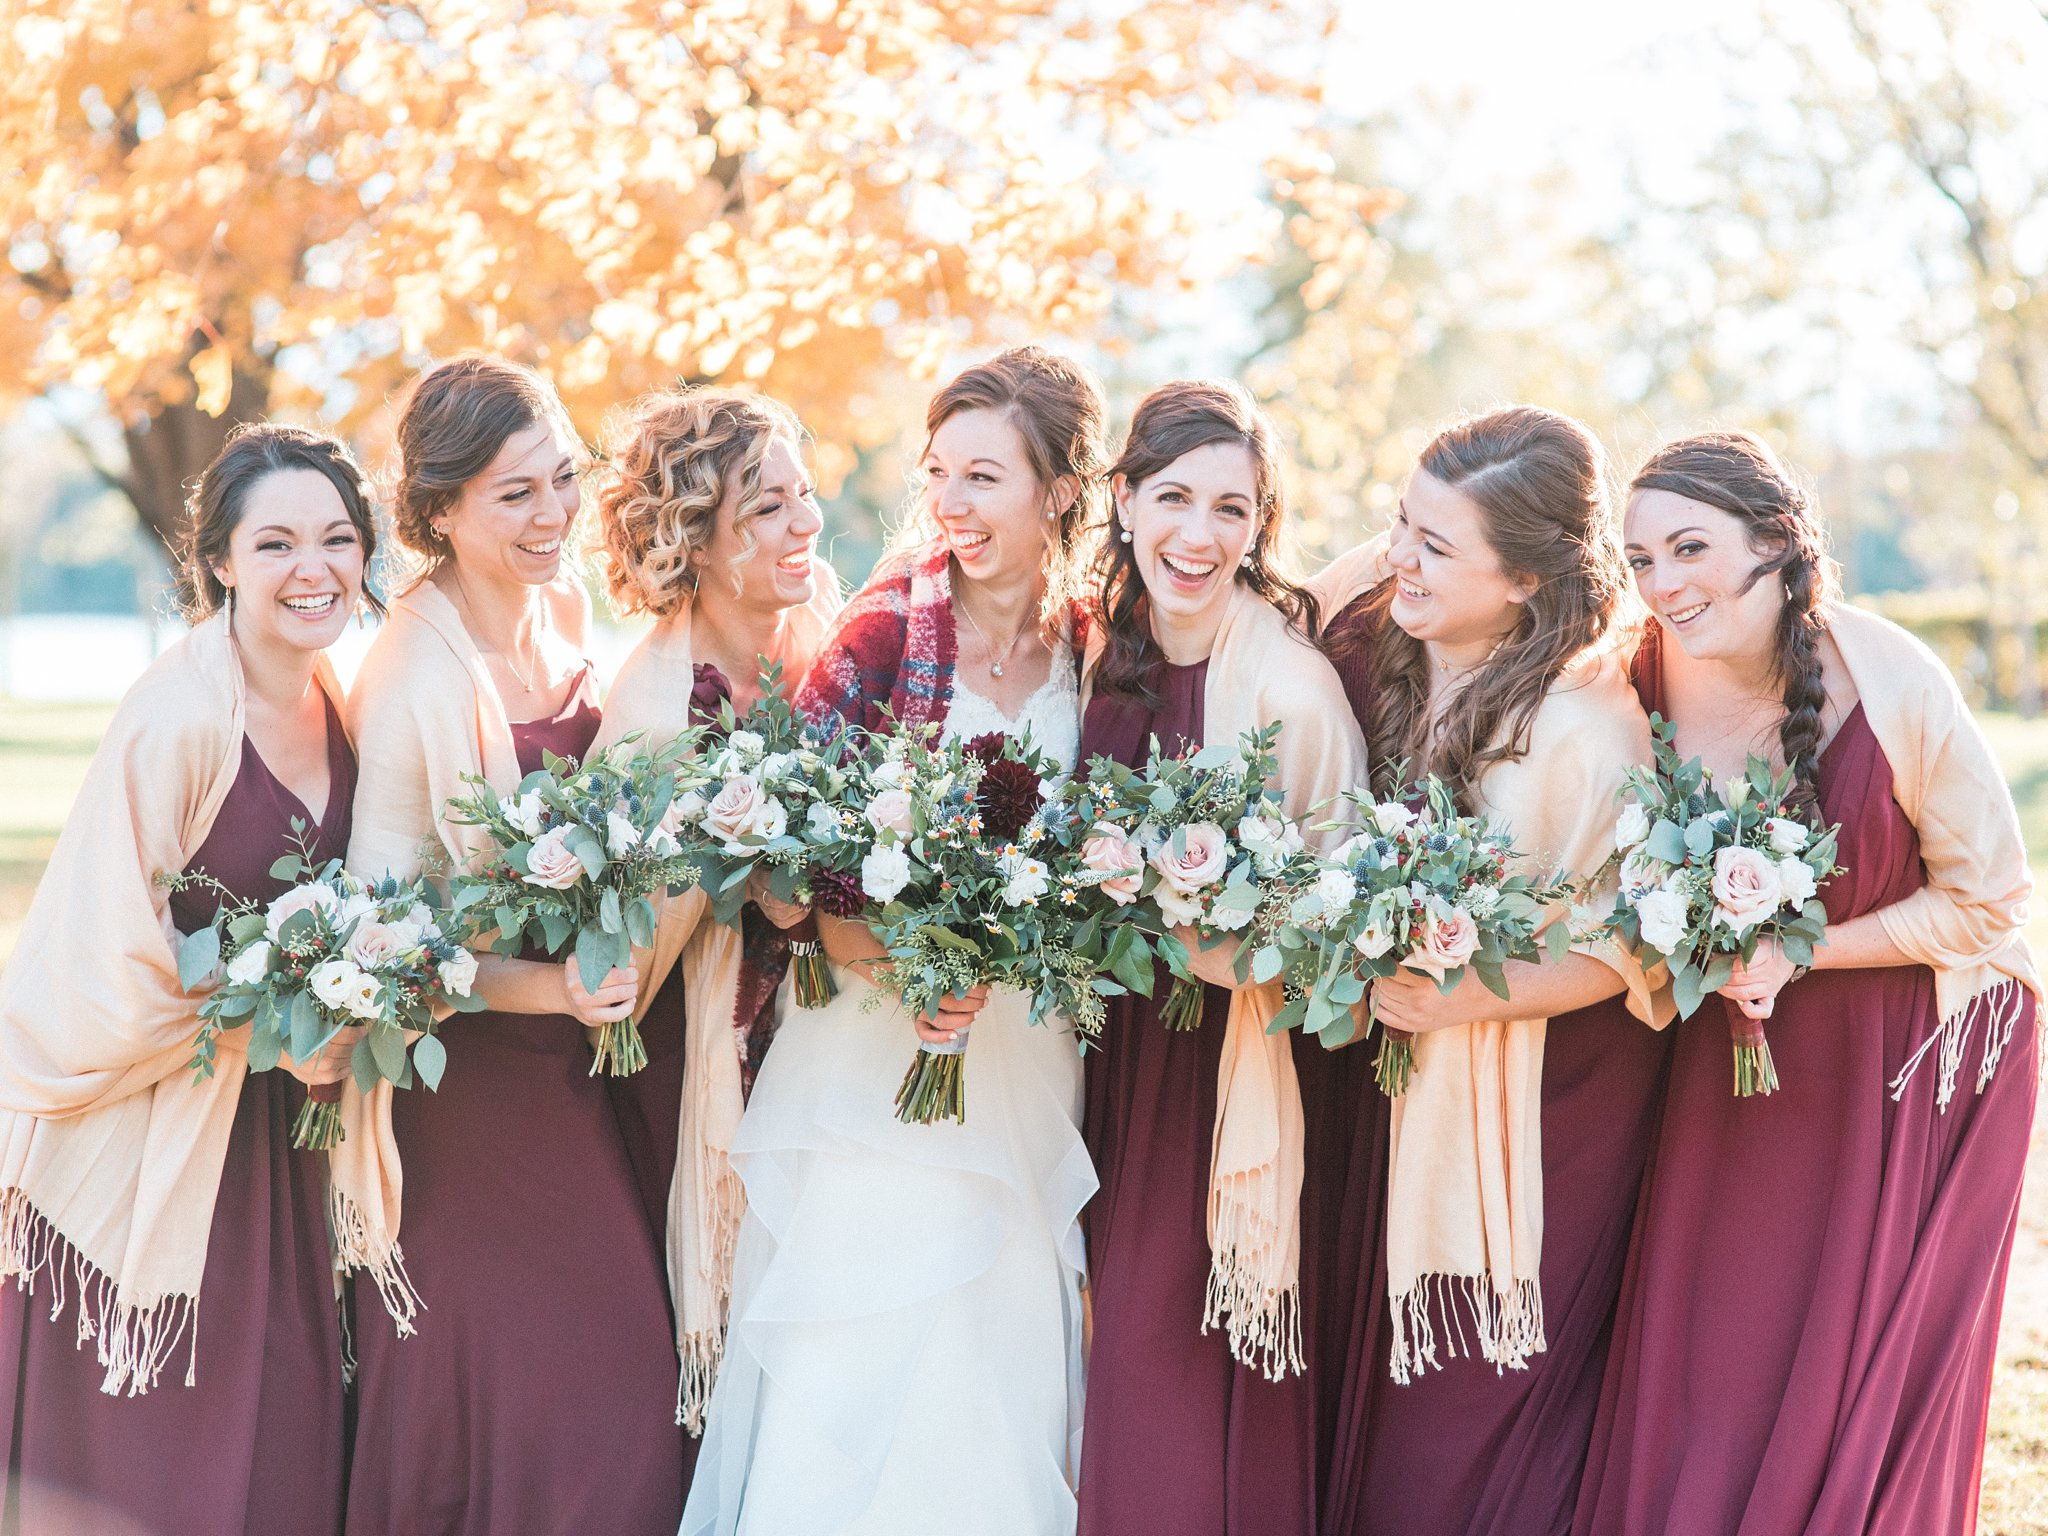 Burgundy bridesmaid dresses Hilton Garden Inn Ottawa Airport Hotel Wedding